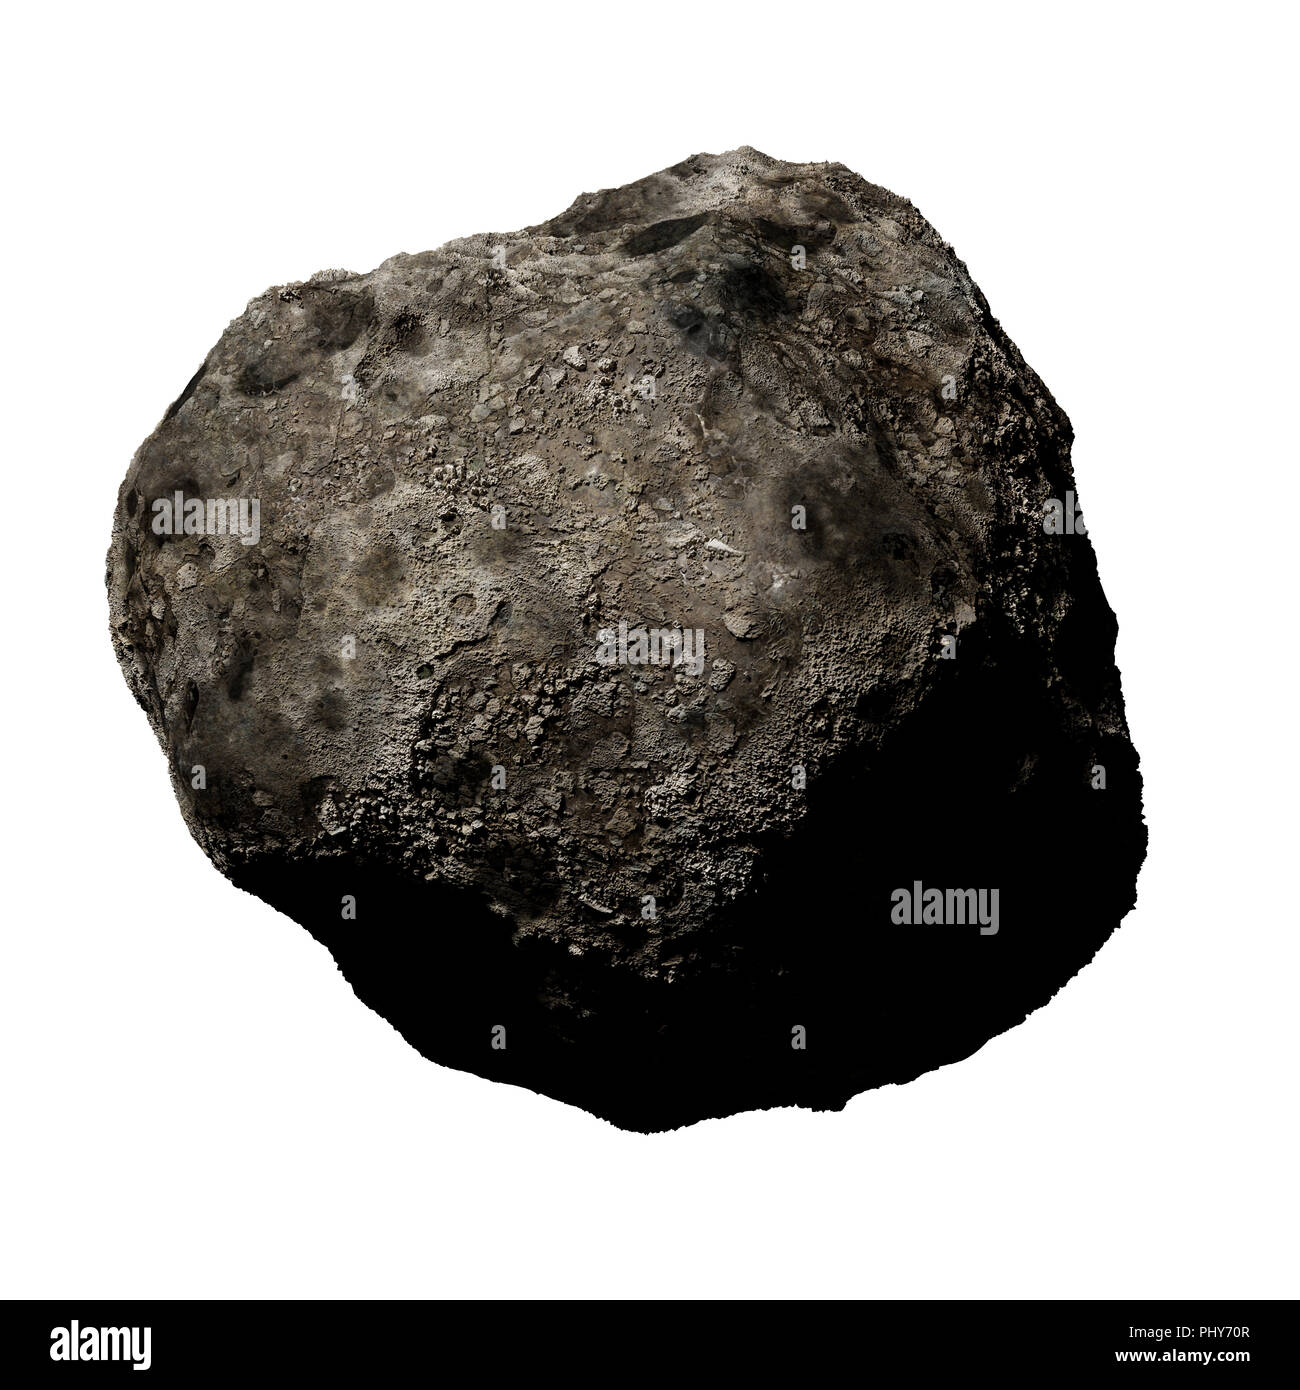 asteroid isolated on white background Stock Photo: 217571783